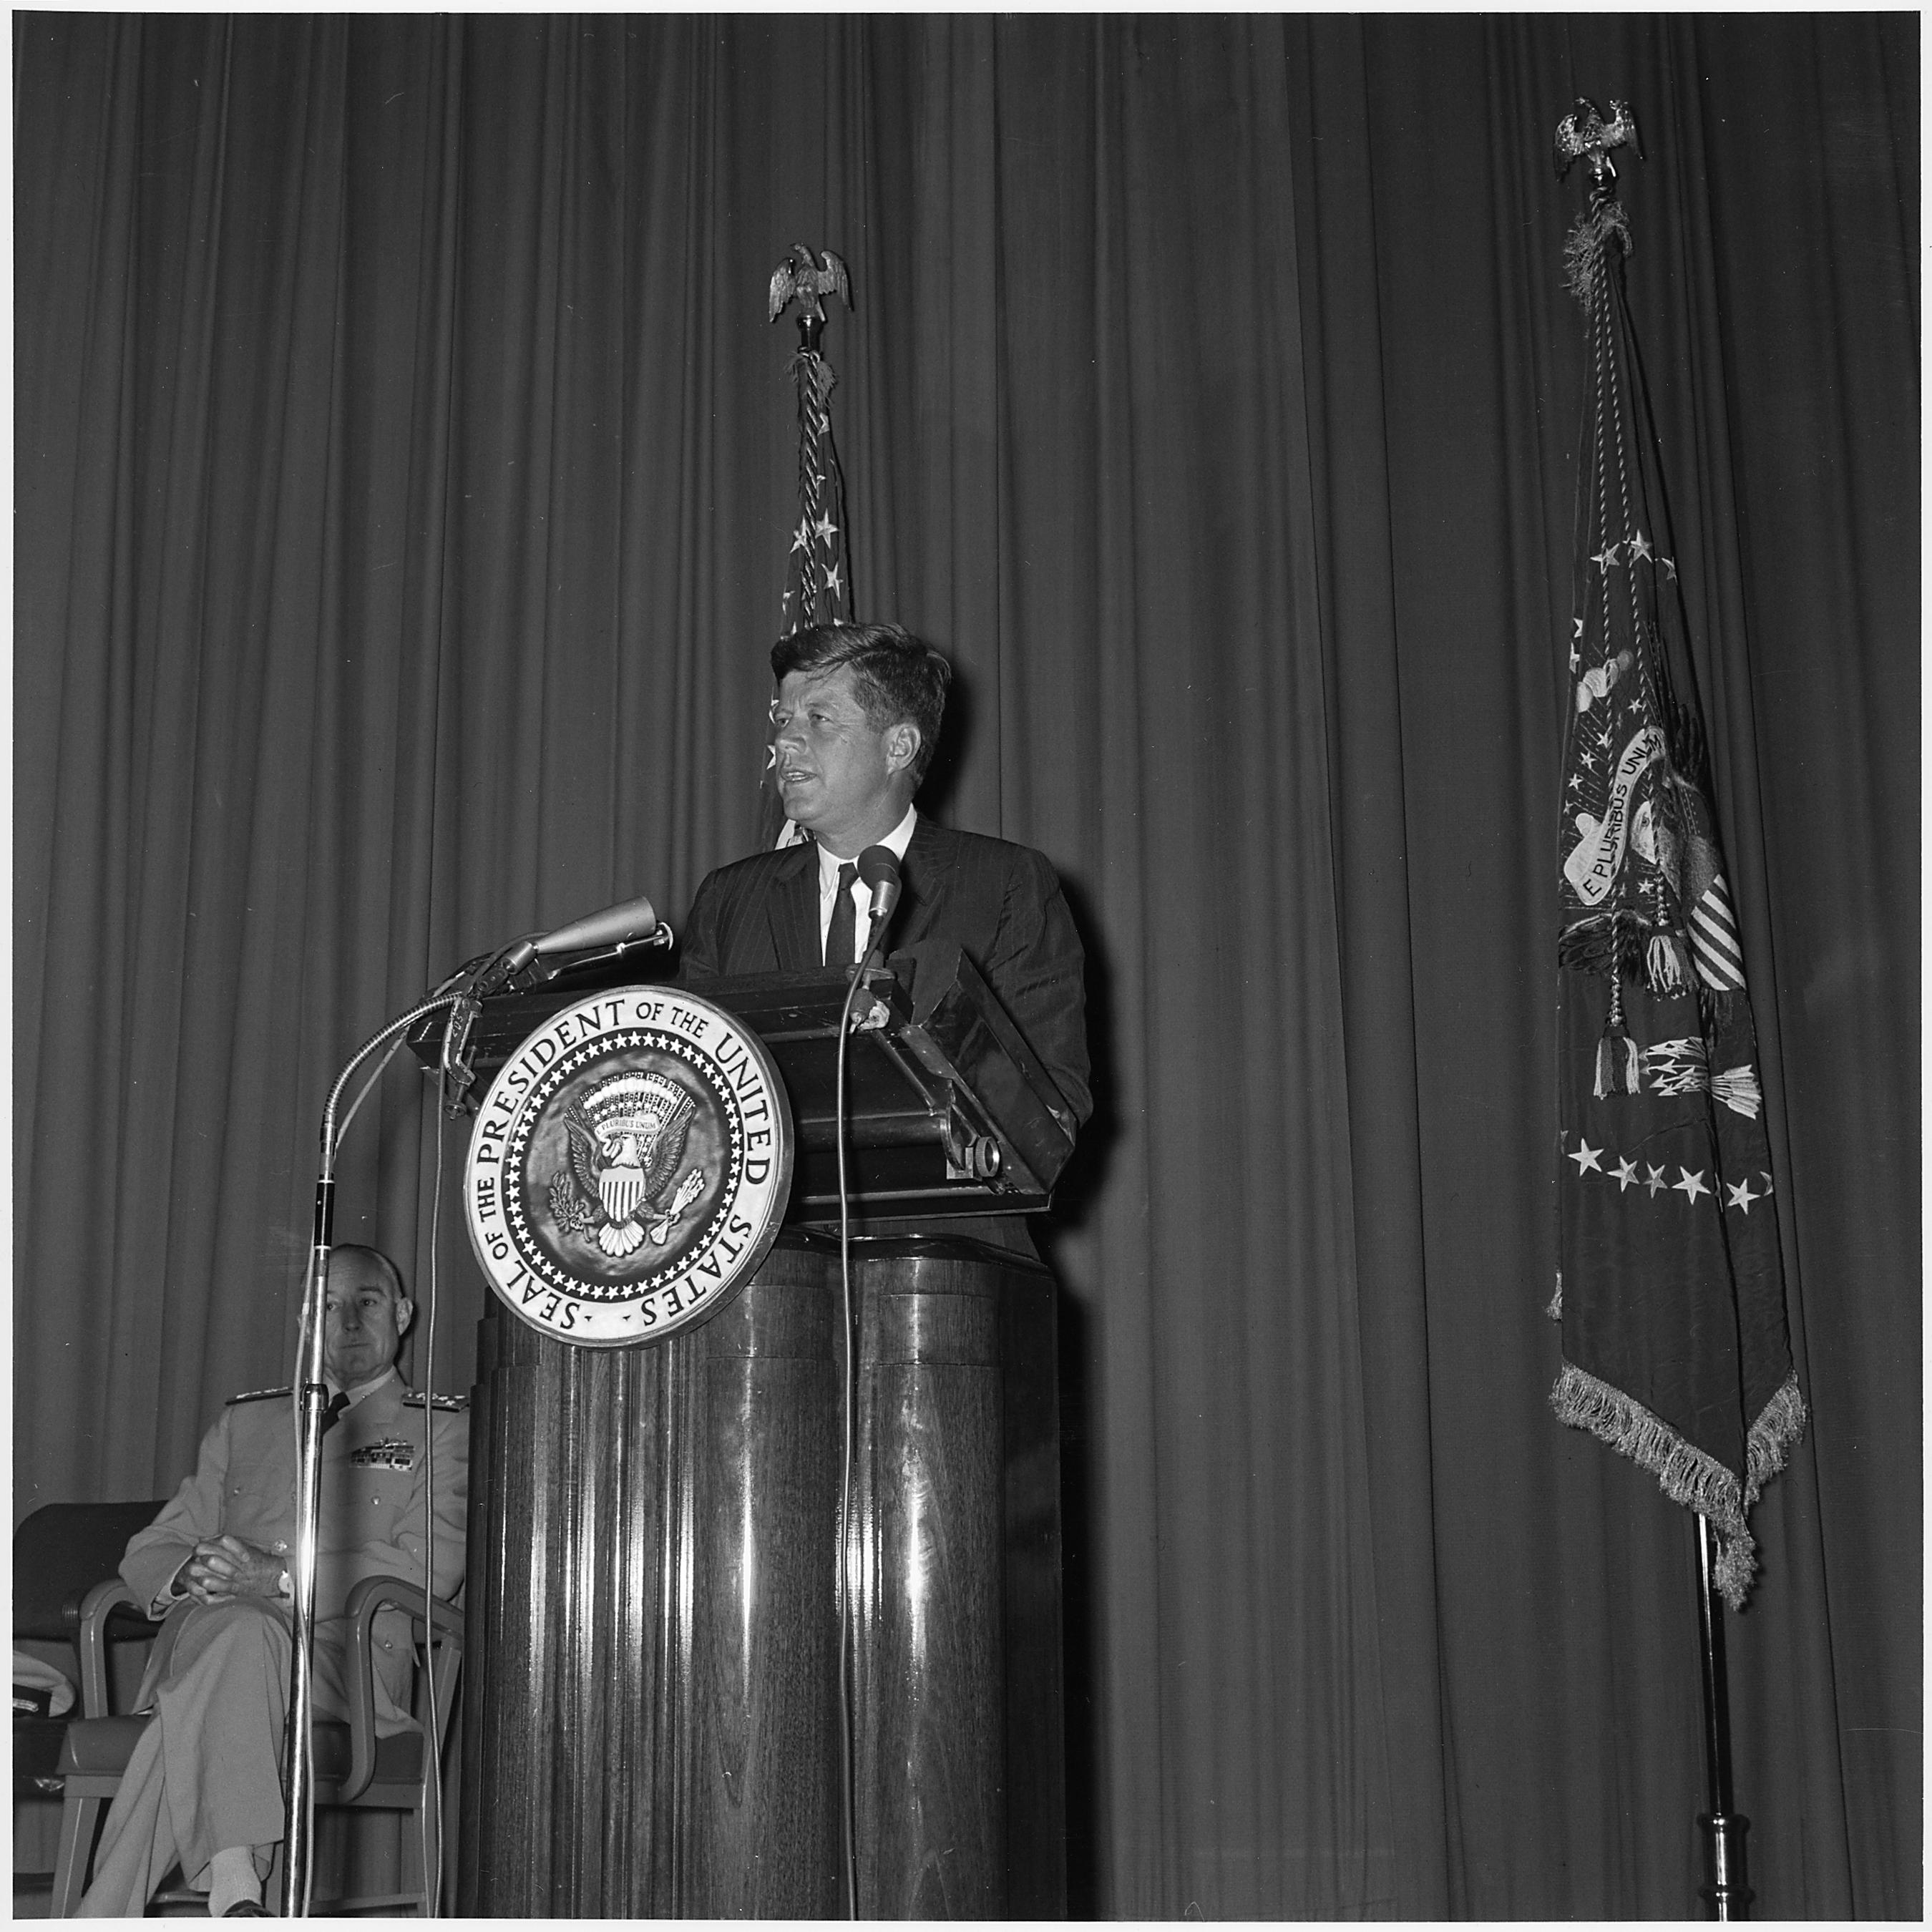 President Kennedy in 1961. Photo by Robert L. Knudsen/Wikimedia Commons